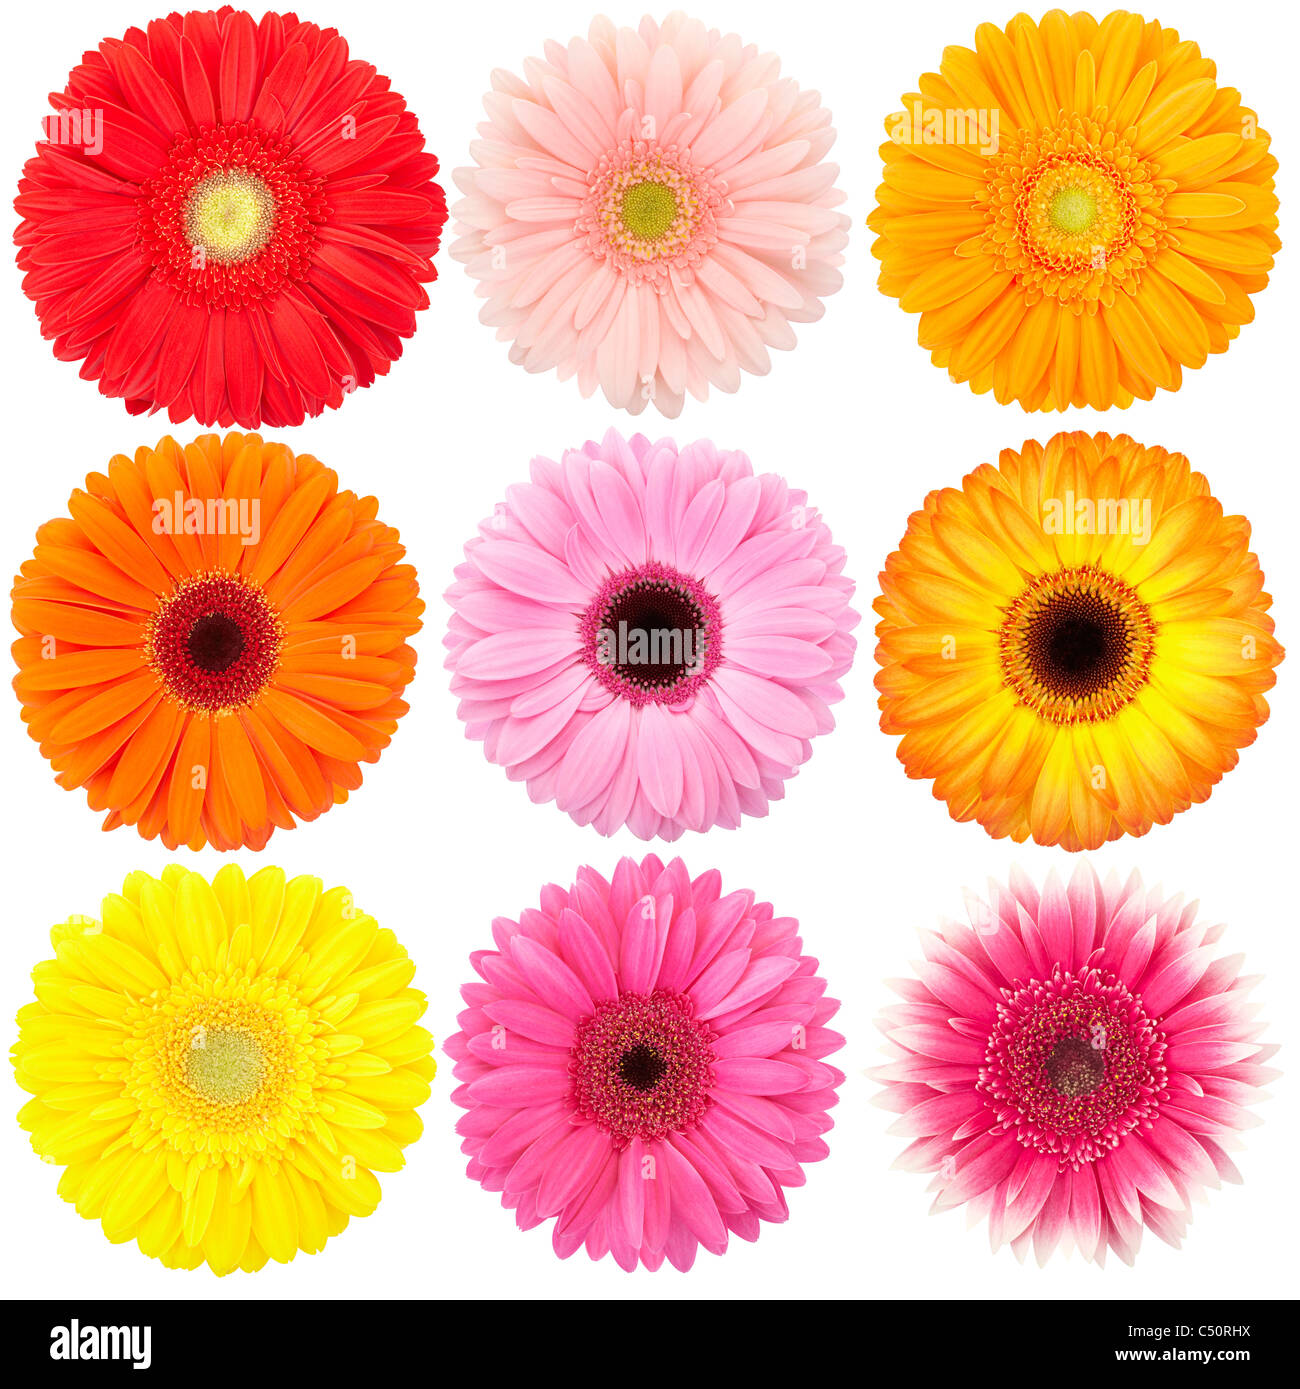 Flower of gerber daisy collection isolated on white - Stock Image